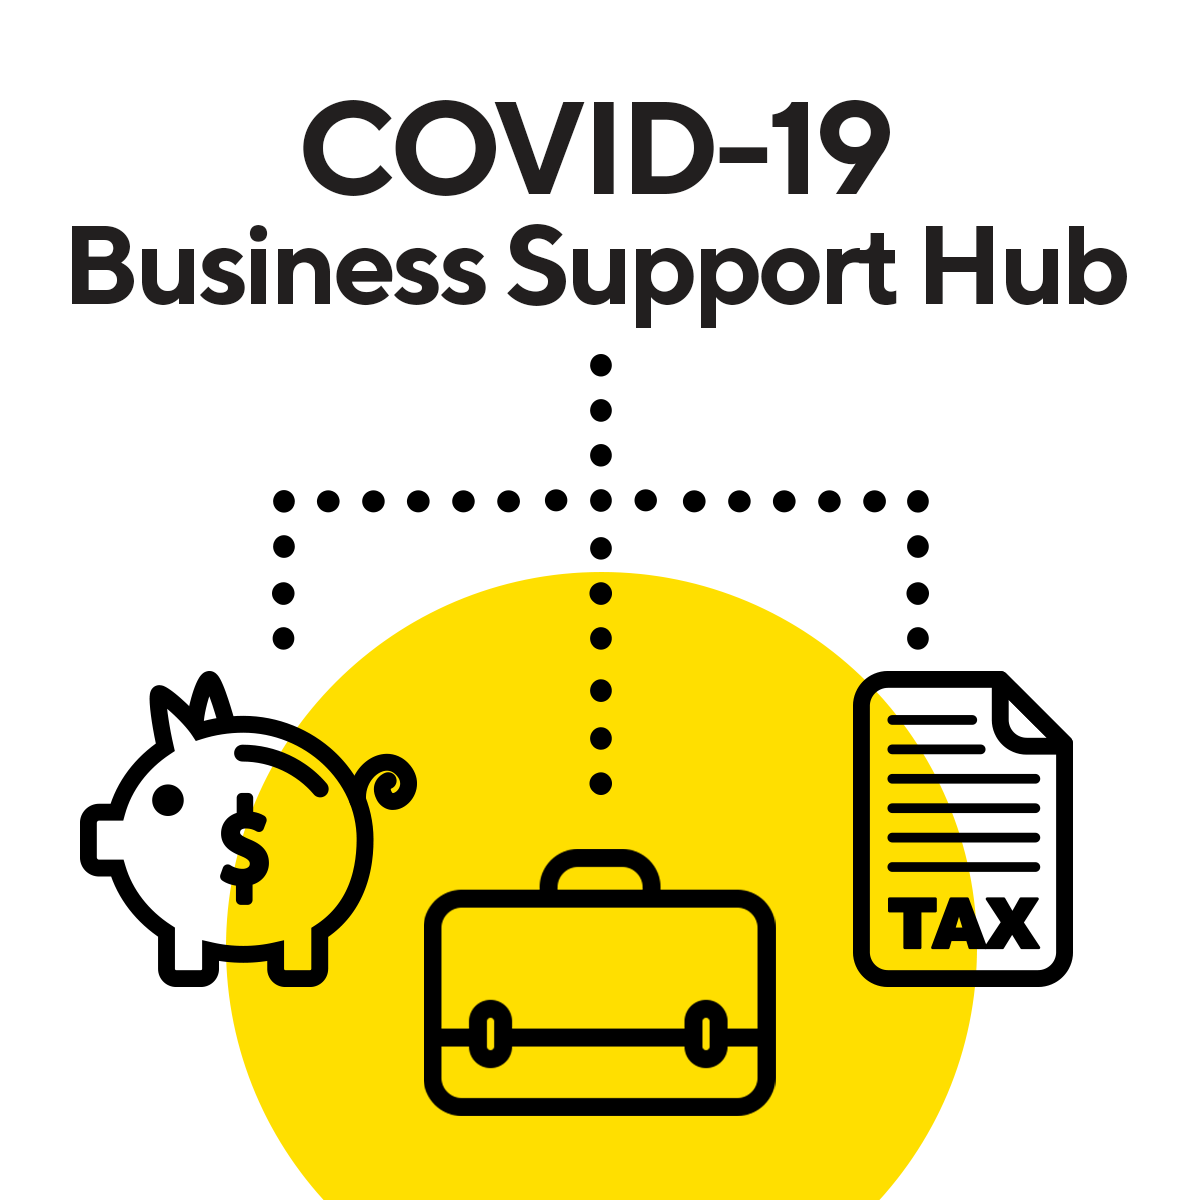 COVID-19 Business Support Hub